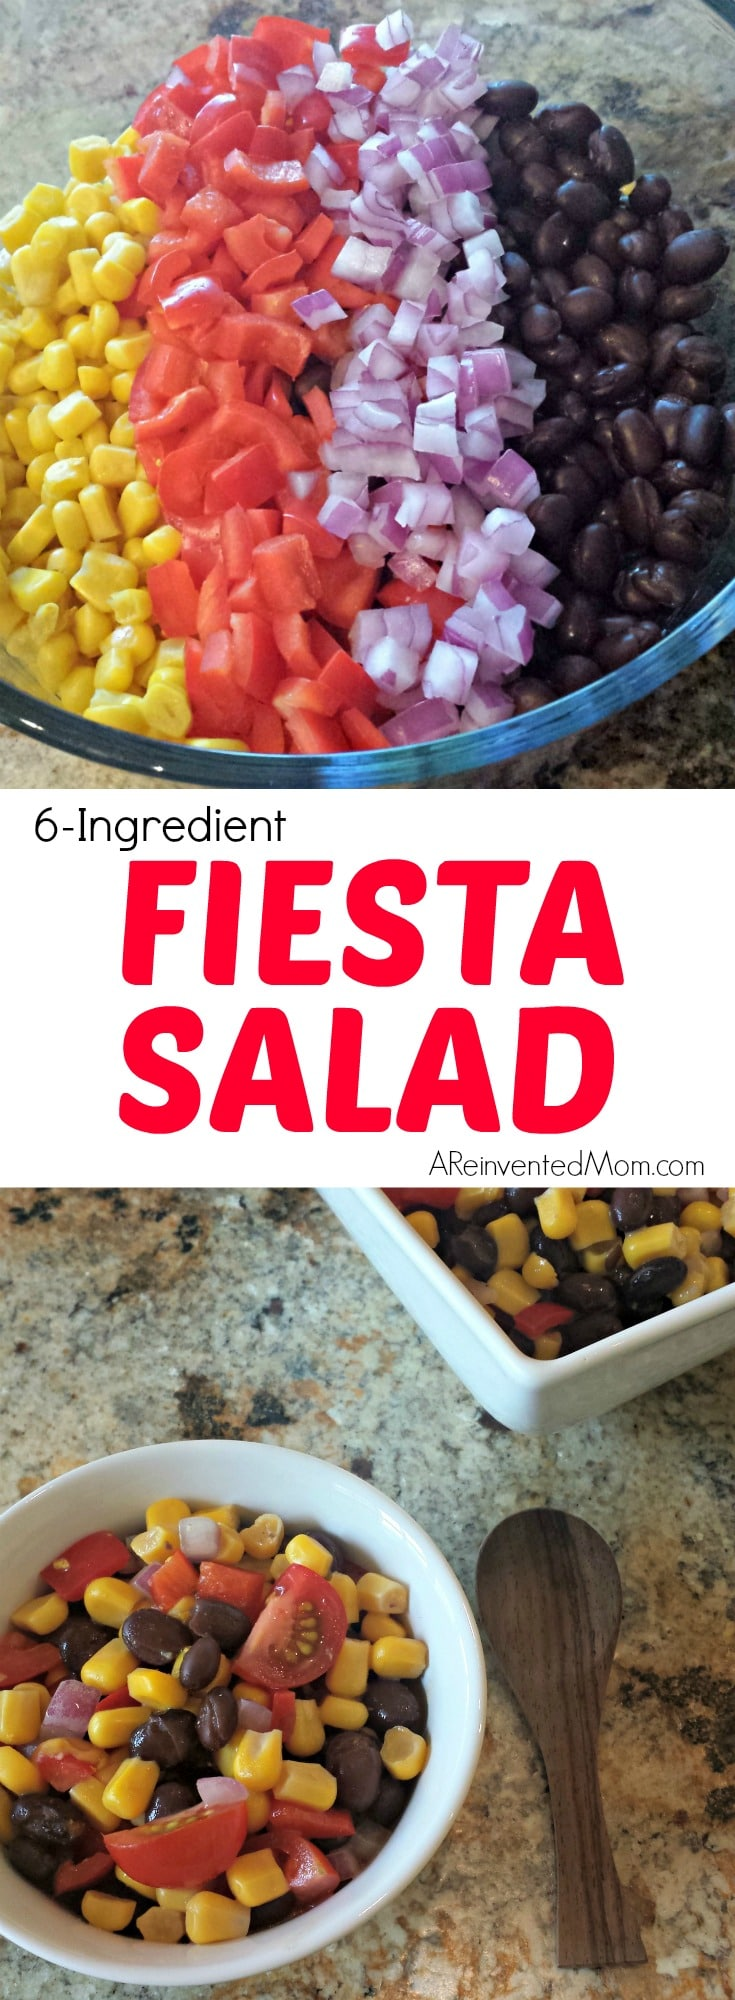 6-Ingredient Fiesta Salad - A Reinvented Mom